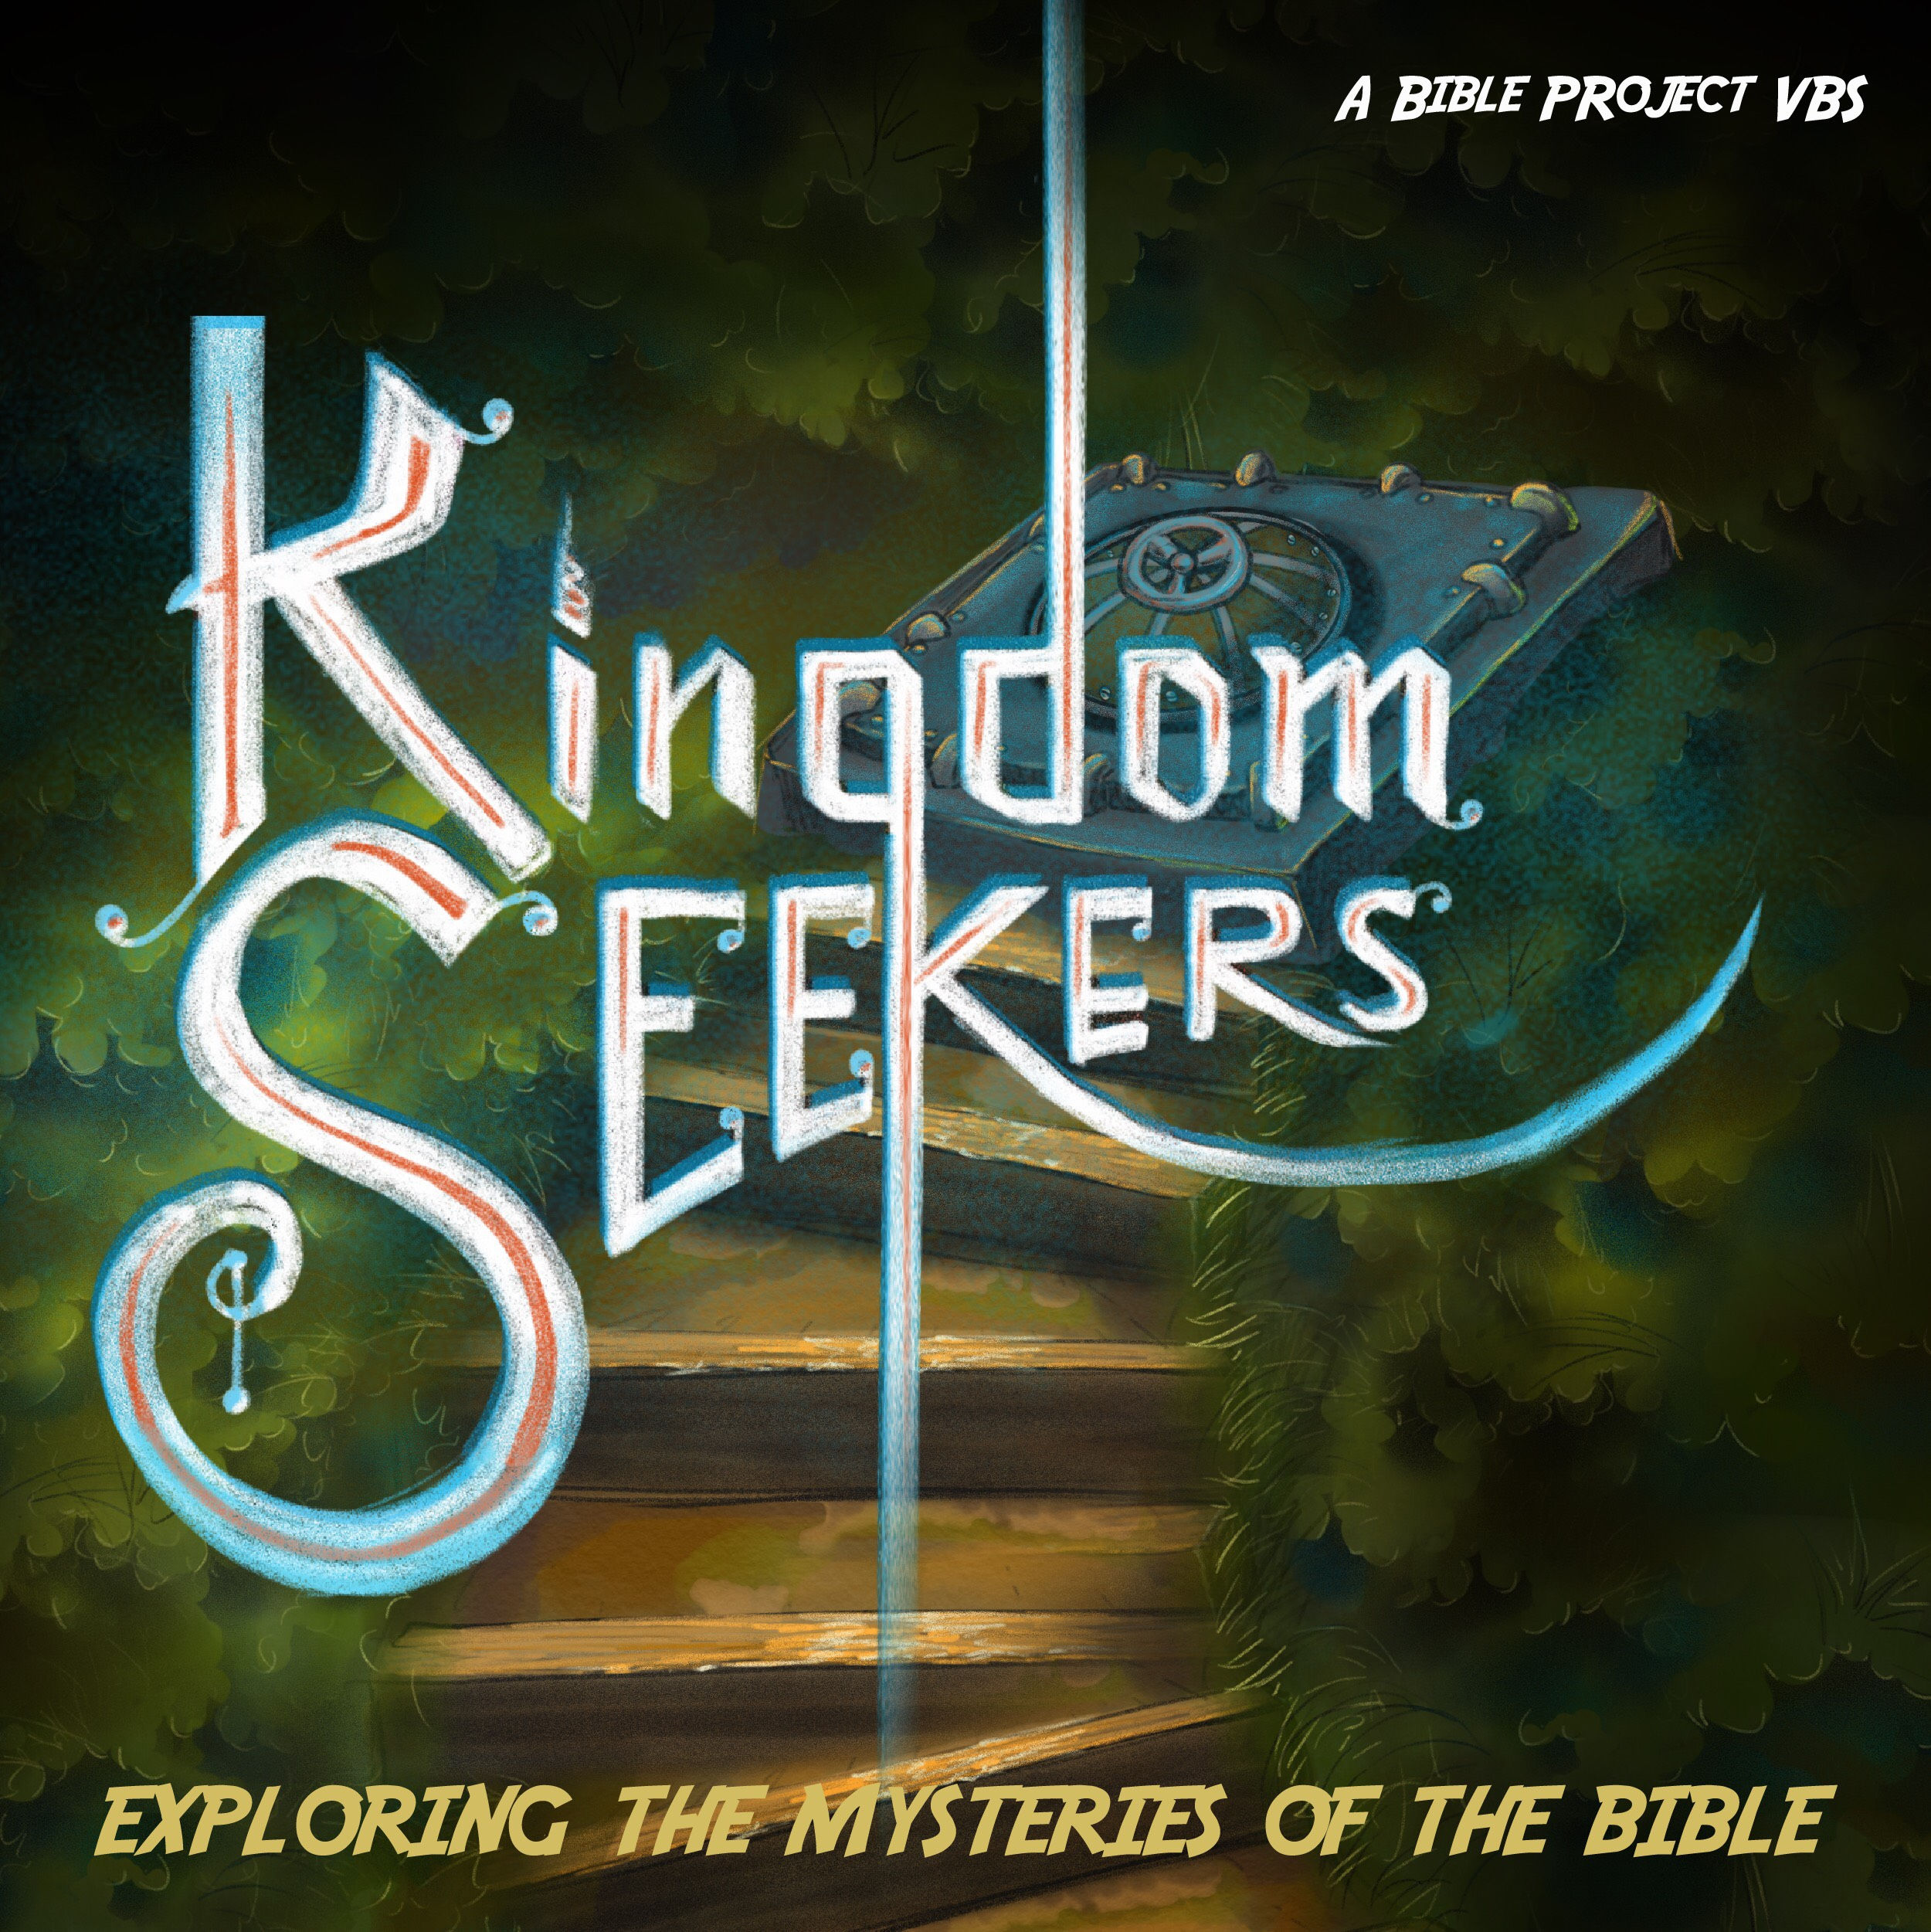 Kingdom Seekers VBS